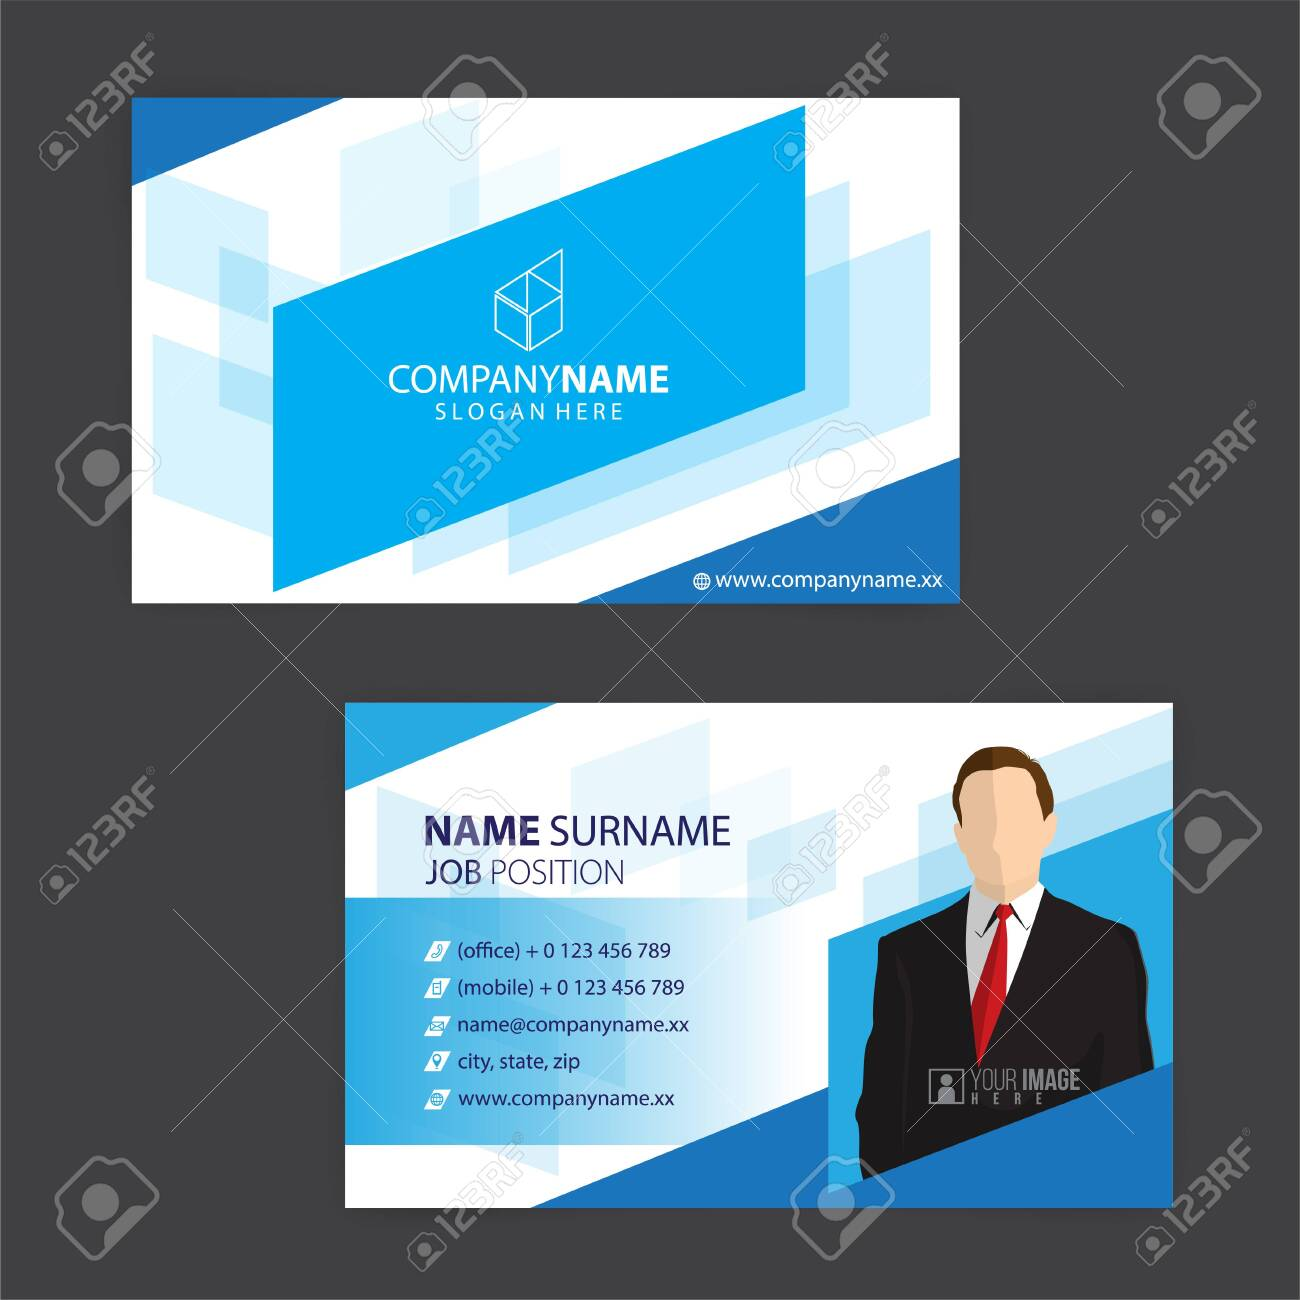 blue and white business cards design, vector - 148426186